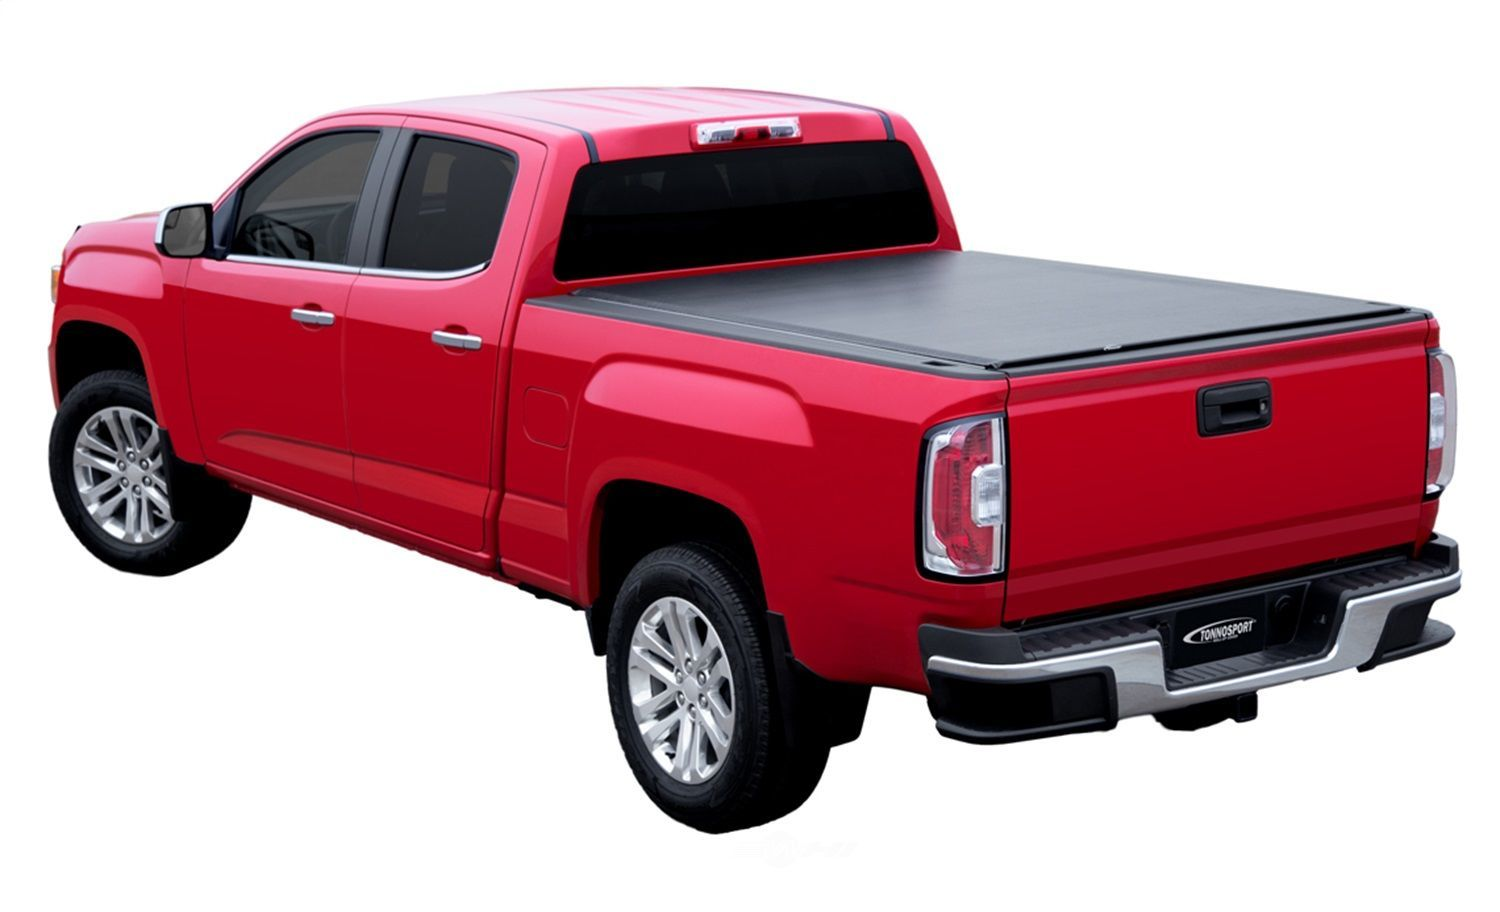 ACCESS COVER - Tonnosport Roll-up Cover - XBP 22020339